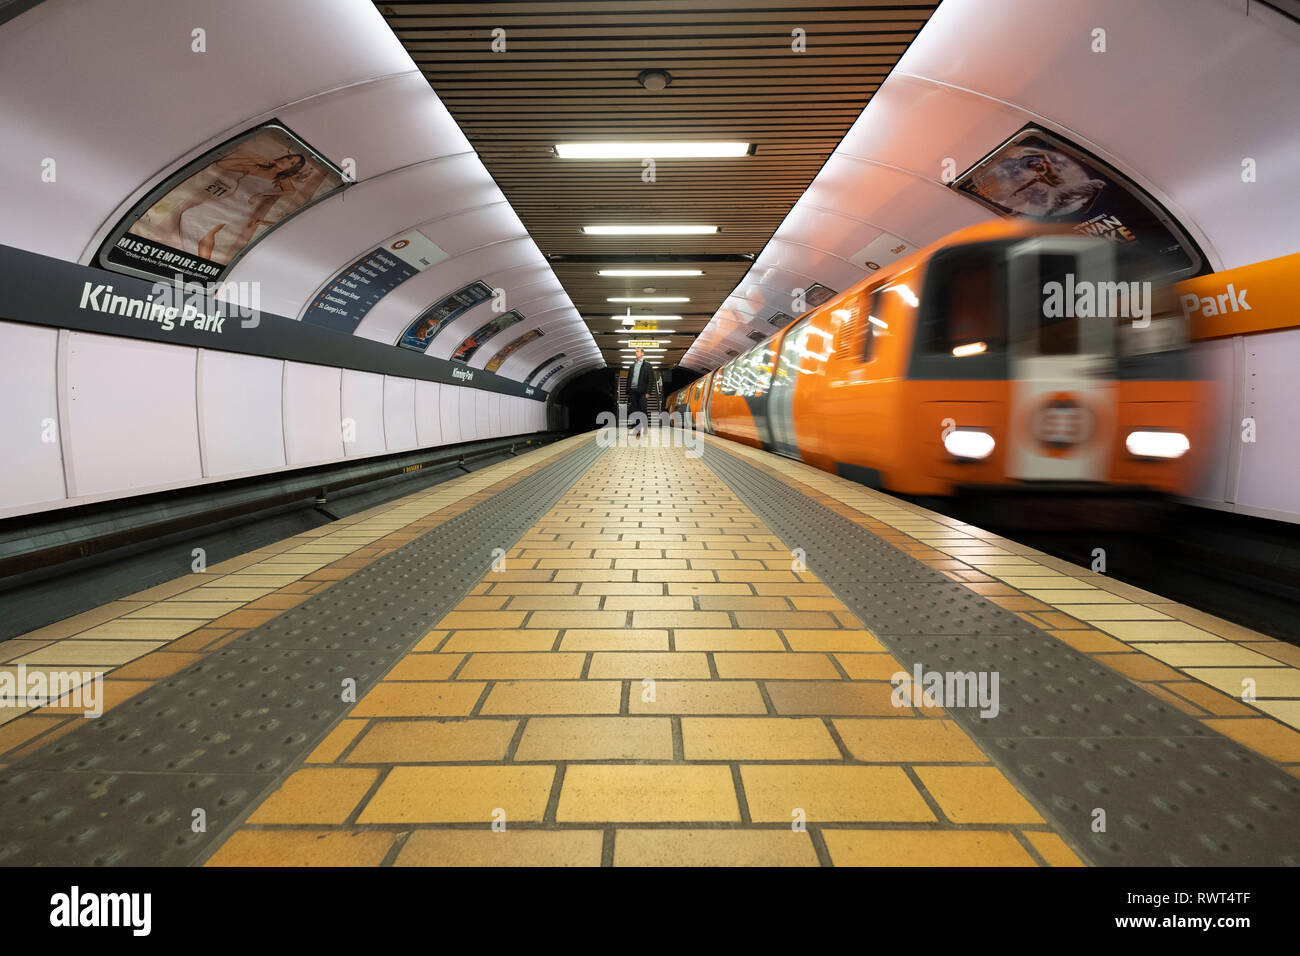 View of platform and train inside station on the Glasgow Subway system in Glasgow, Scotland UK - Stock Image